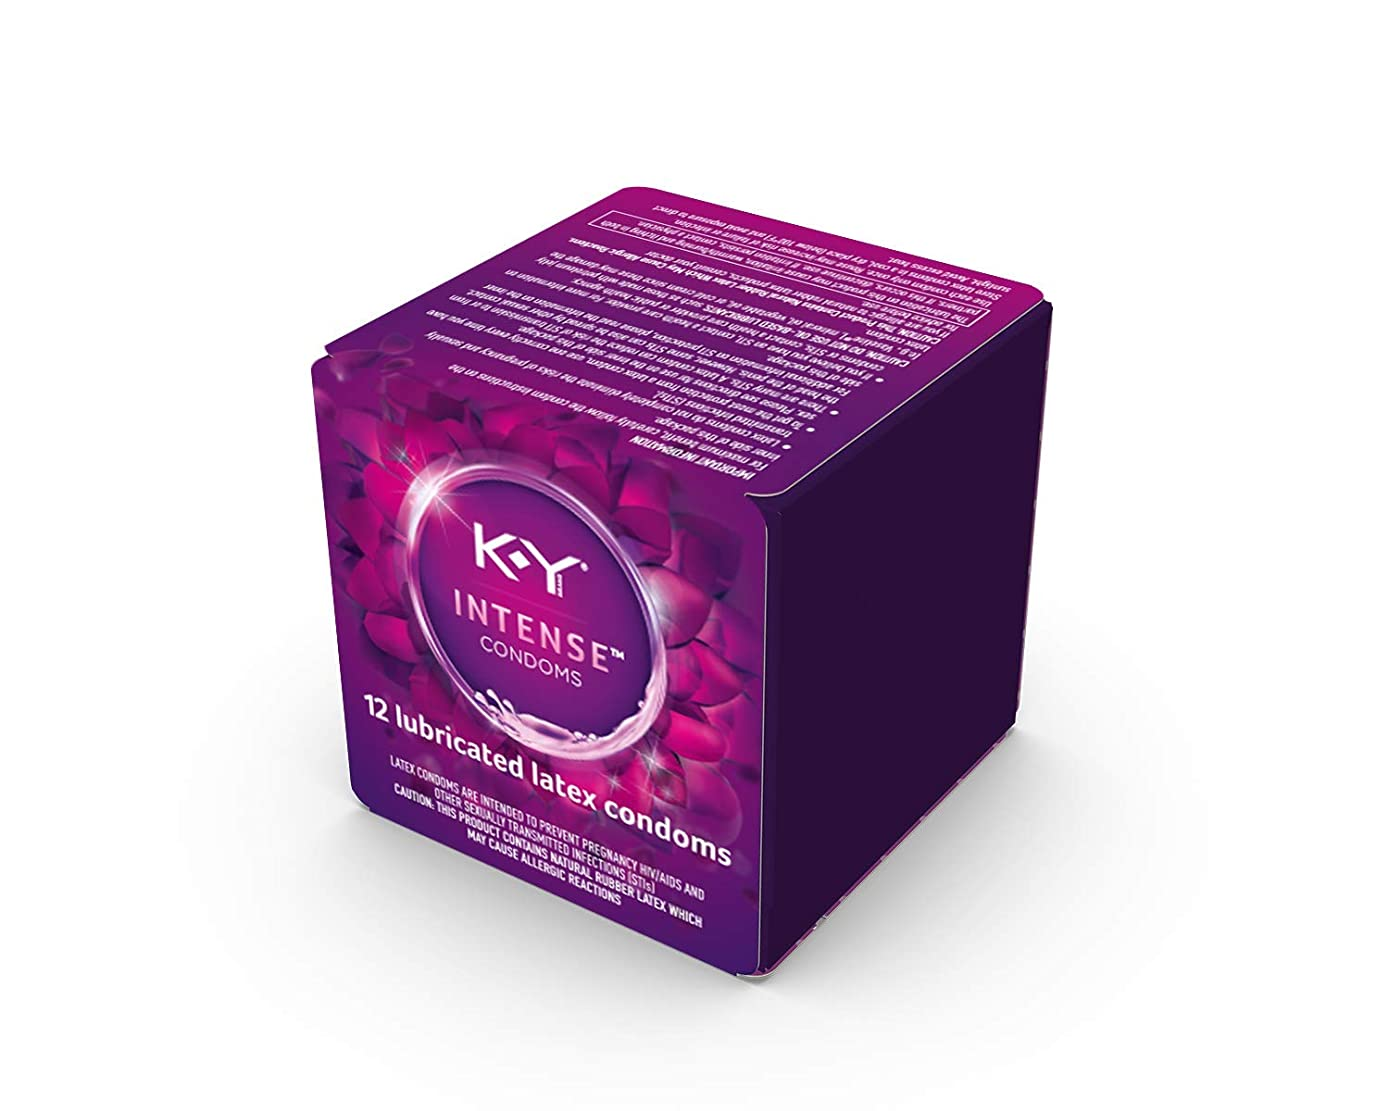 Condoms, K-Y Me & You Intense Latex Ultra Thin Condoms. Intensifying Sensation For Her and Natural Fit for Him.  12 Count. Natural Rubber Latex Condoms with Water-Based Lubricant. HSA Eligible